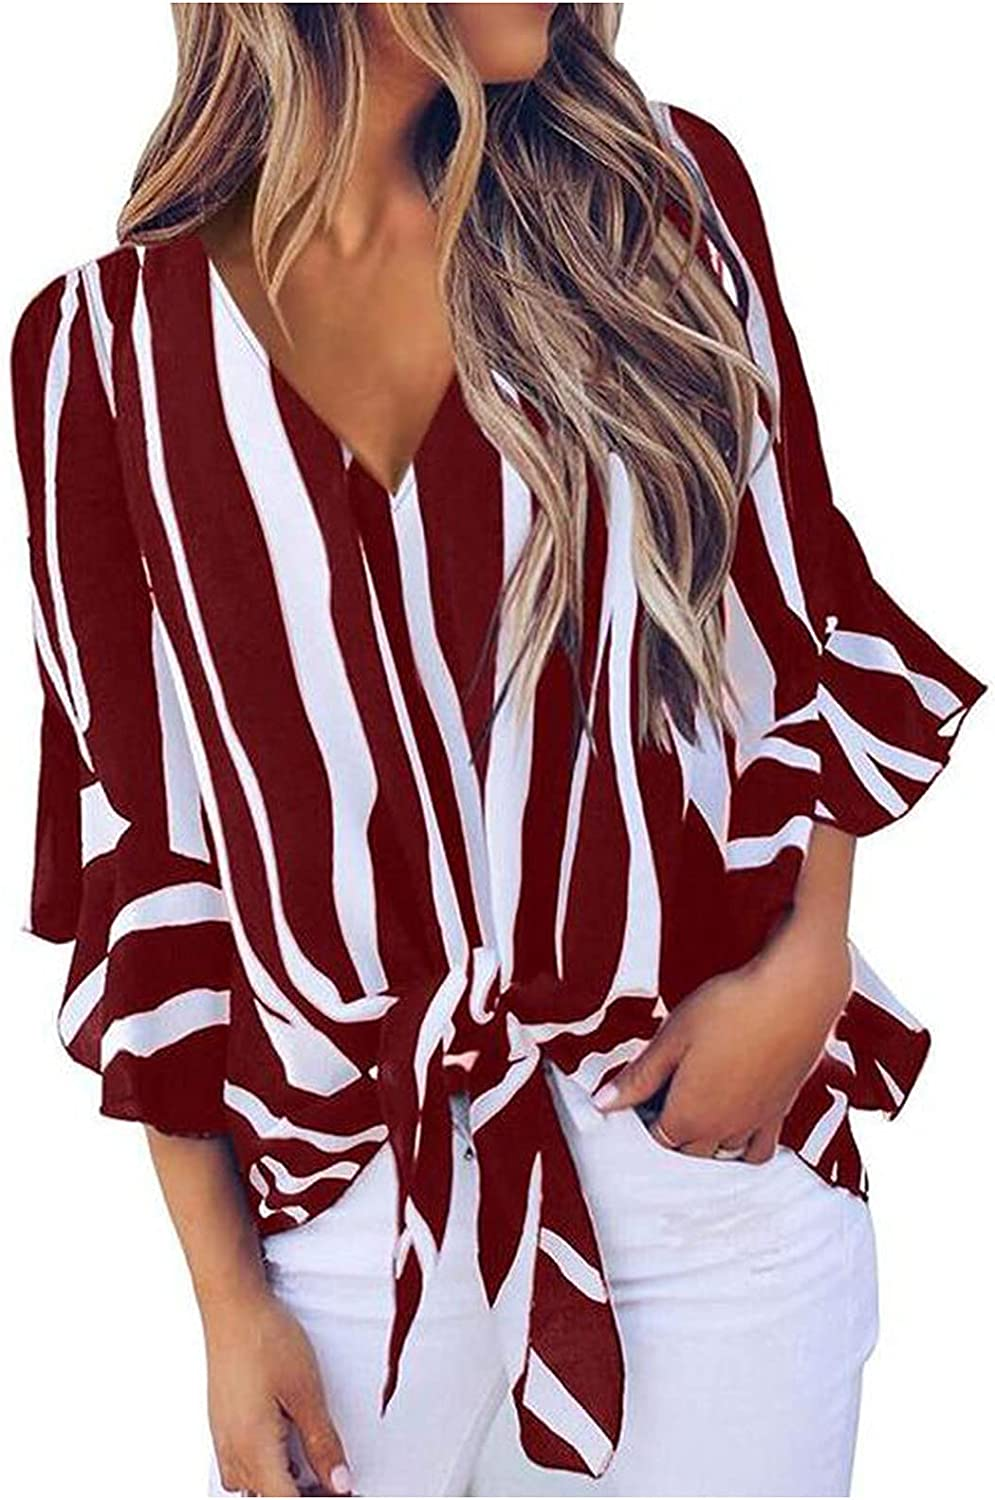 Striped Knotted T-Shirts for Women Comfy Workout Tops Elegant Chiffon Shirts Casual 3/4 Sleeve Tees V-Neck Summer Blouse